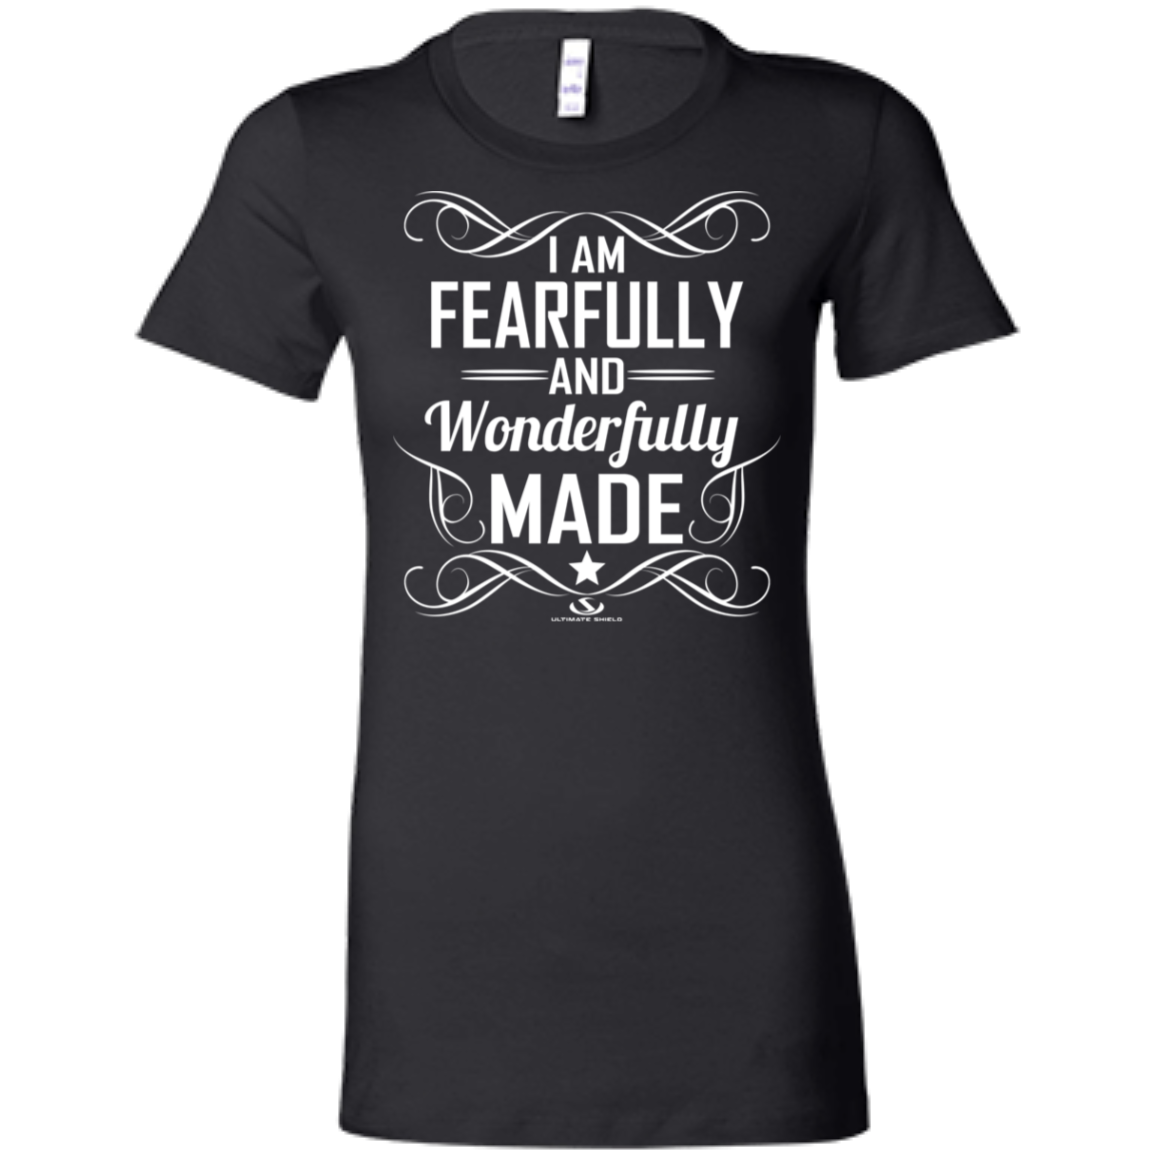 33fae57e734d9 I AM FEARFULLY AND WONDERFULLY MADE Ladies' Favorite T-Shirt